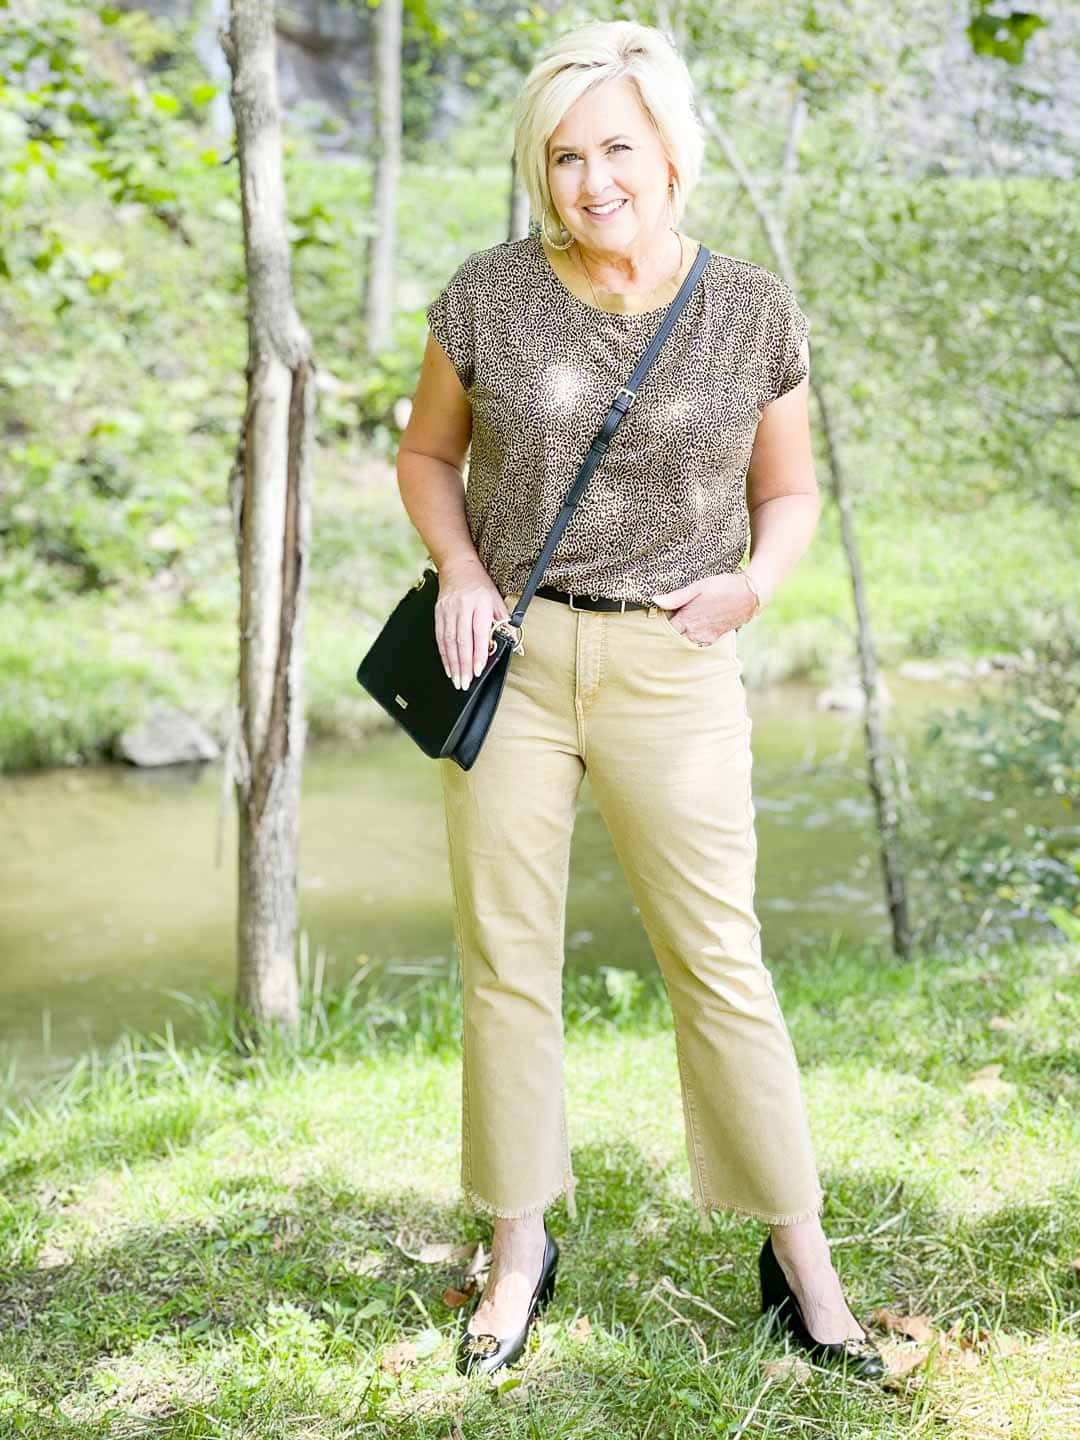 Over 40 Fashion Blogger, Tania Stephens is wearing animal print with tan cropped jeans for fall